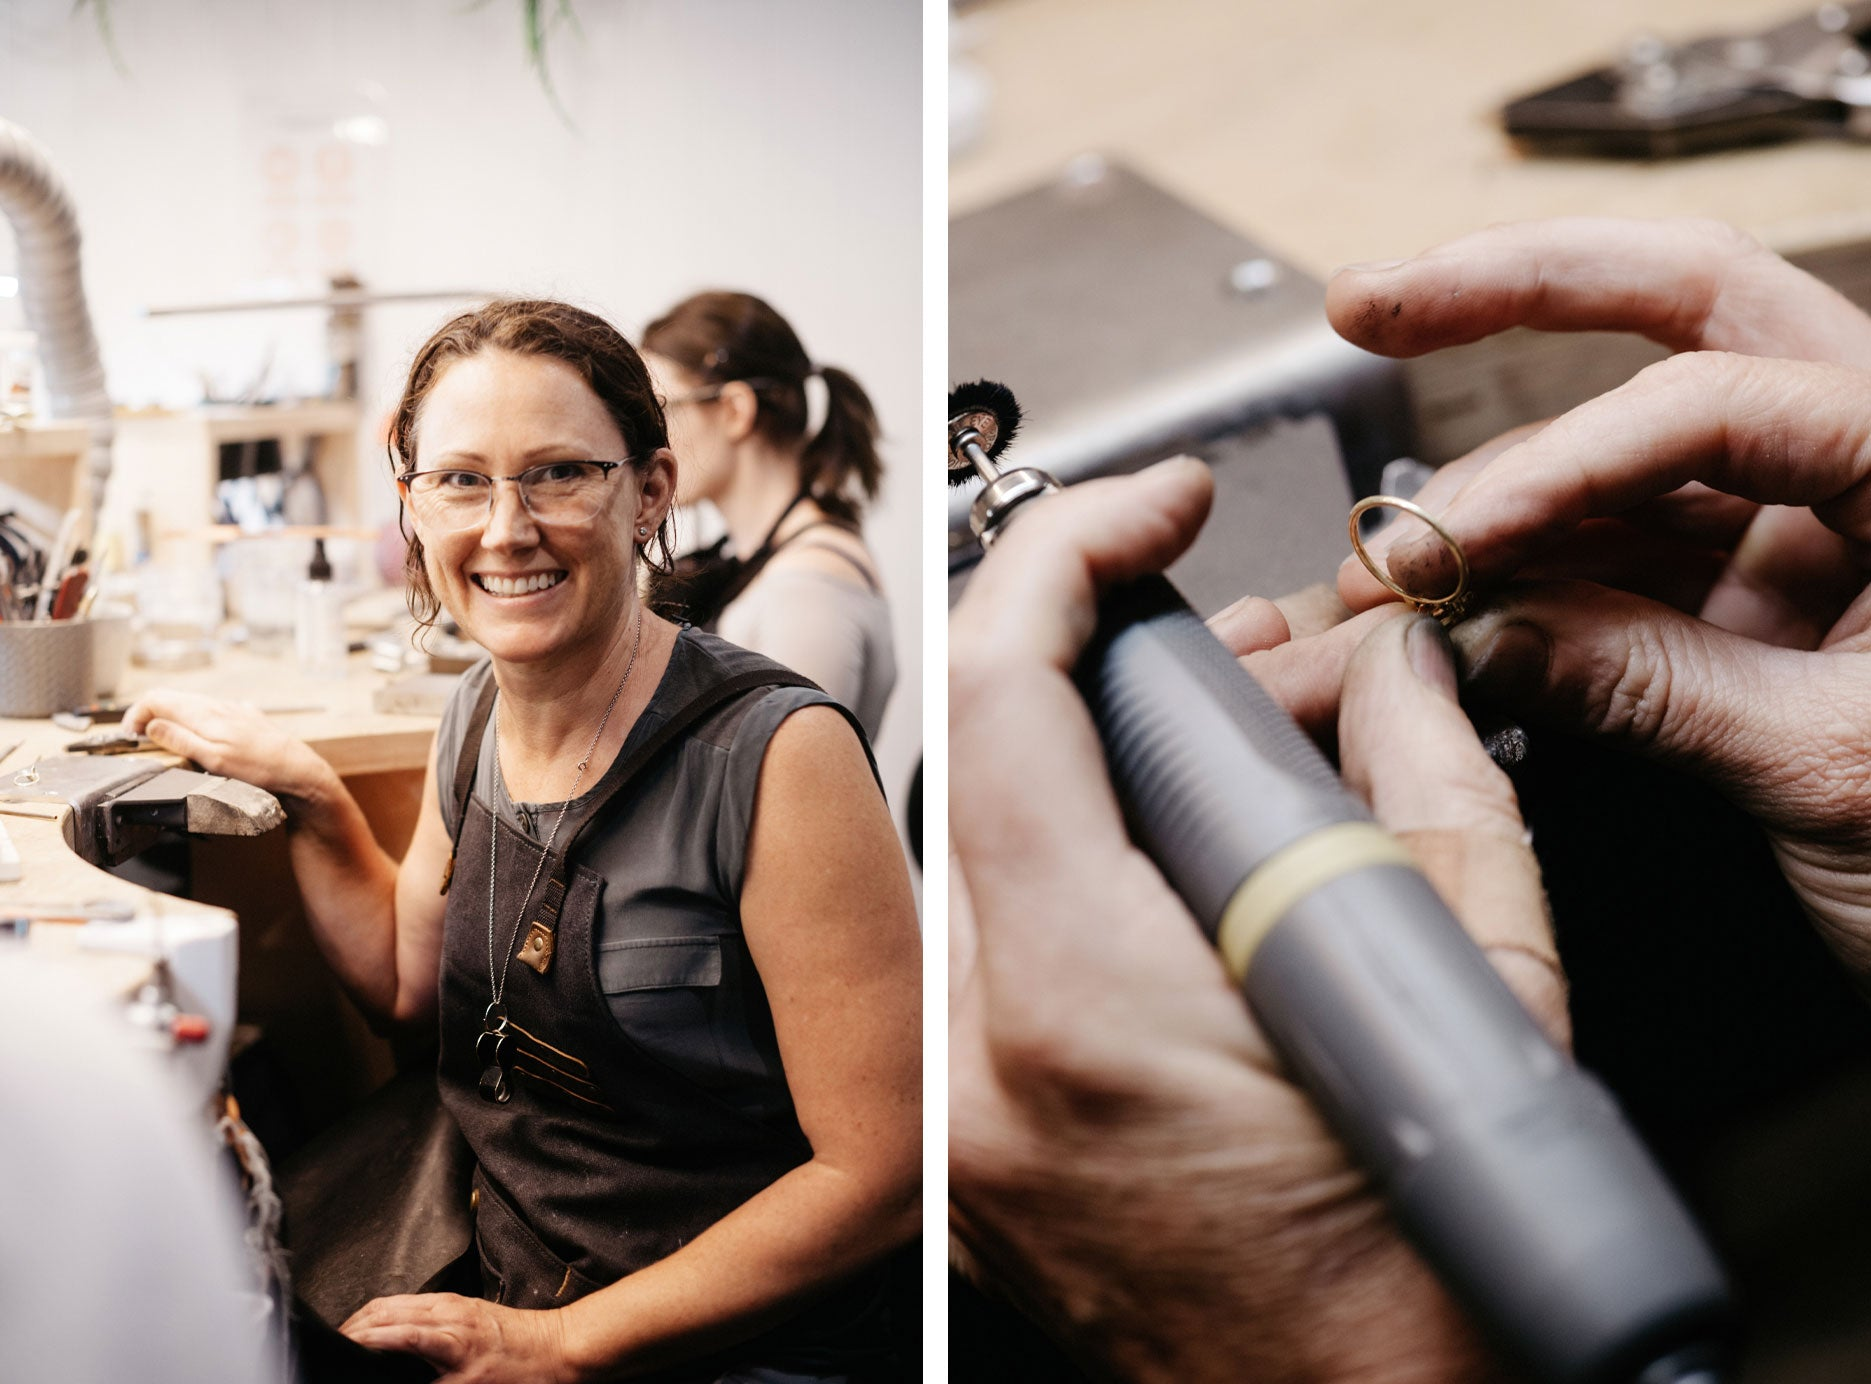 Bronwyn, our Head Jeweller, handcrafting jewellery in the studio.